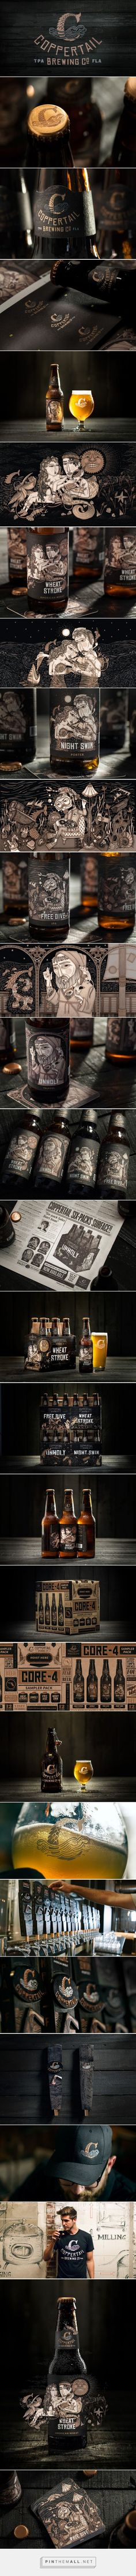 Coppertail Brewing Co. #packaging designed by sparkbrand